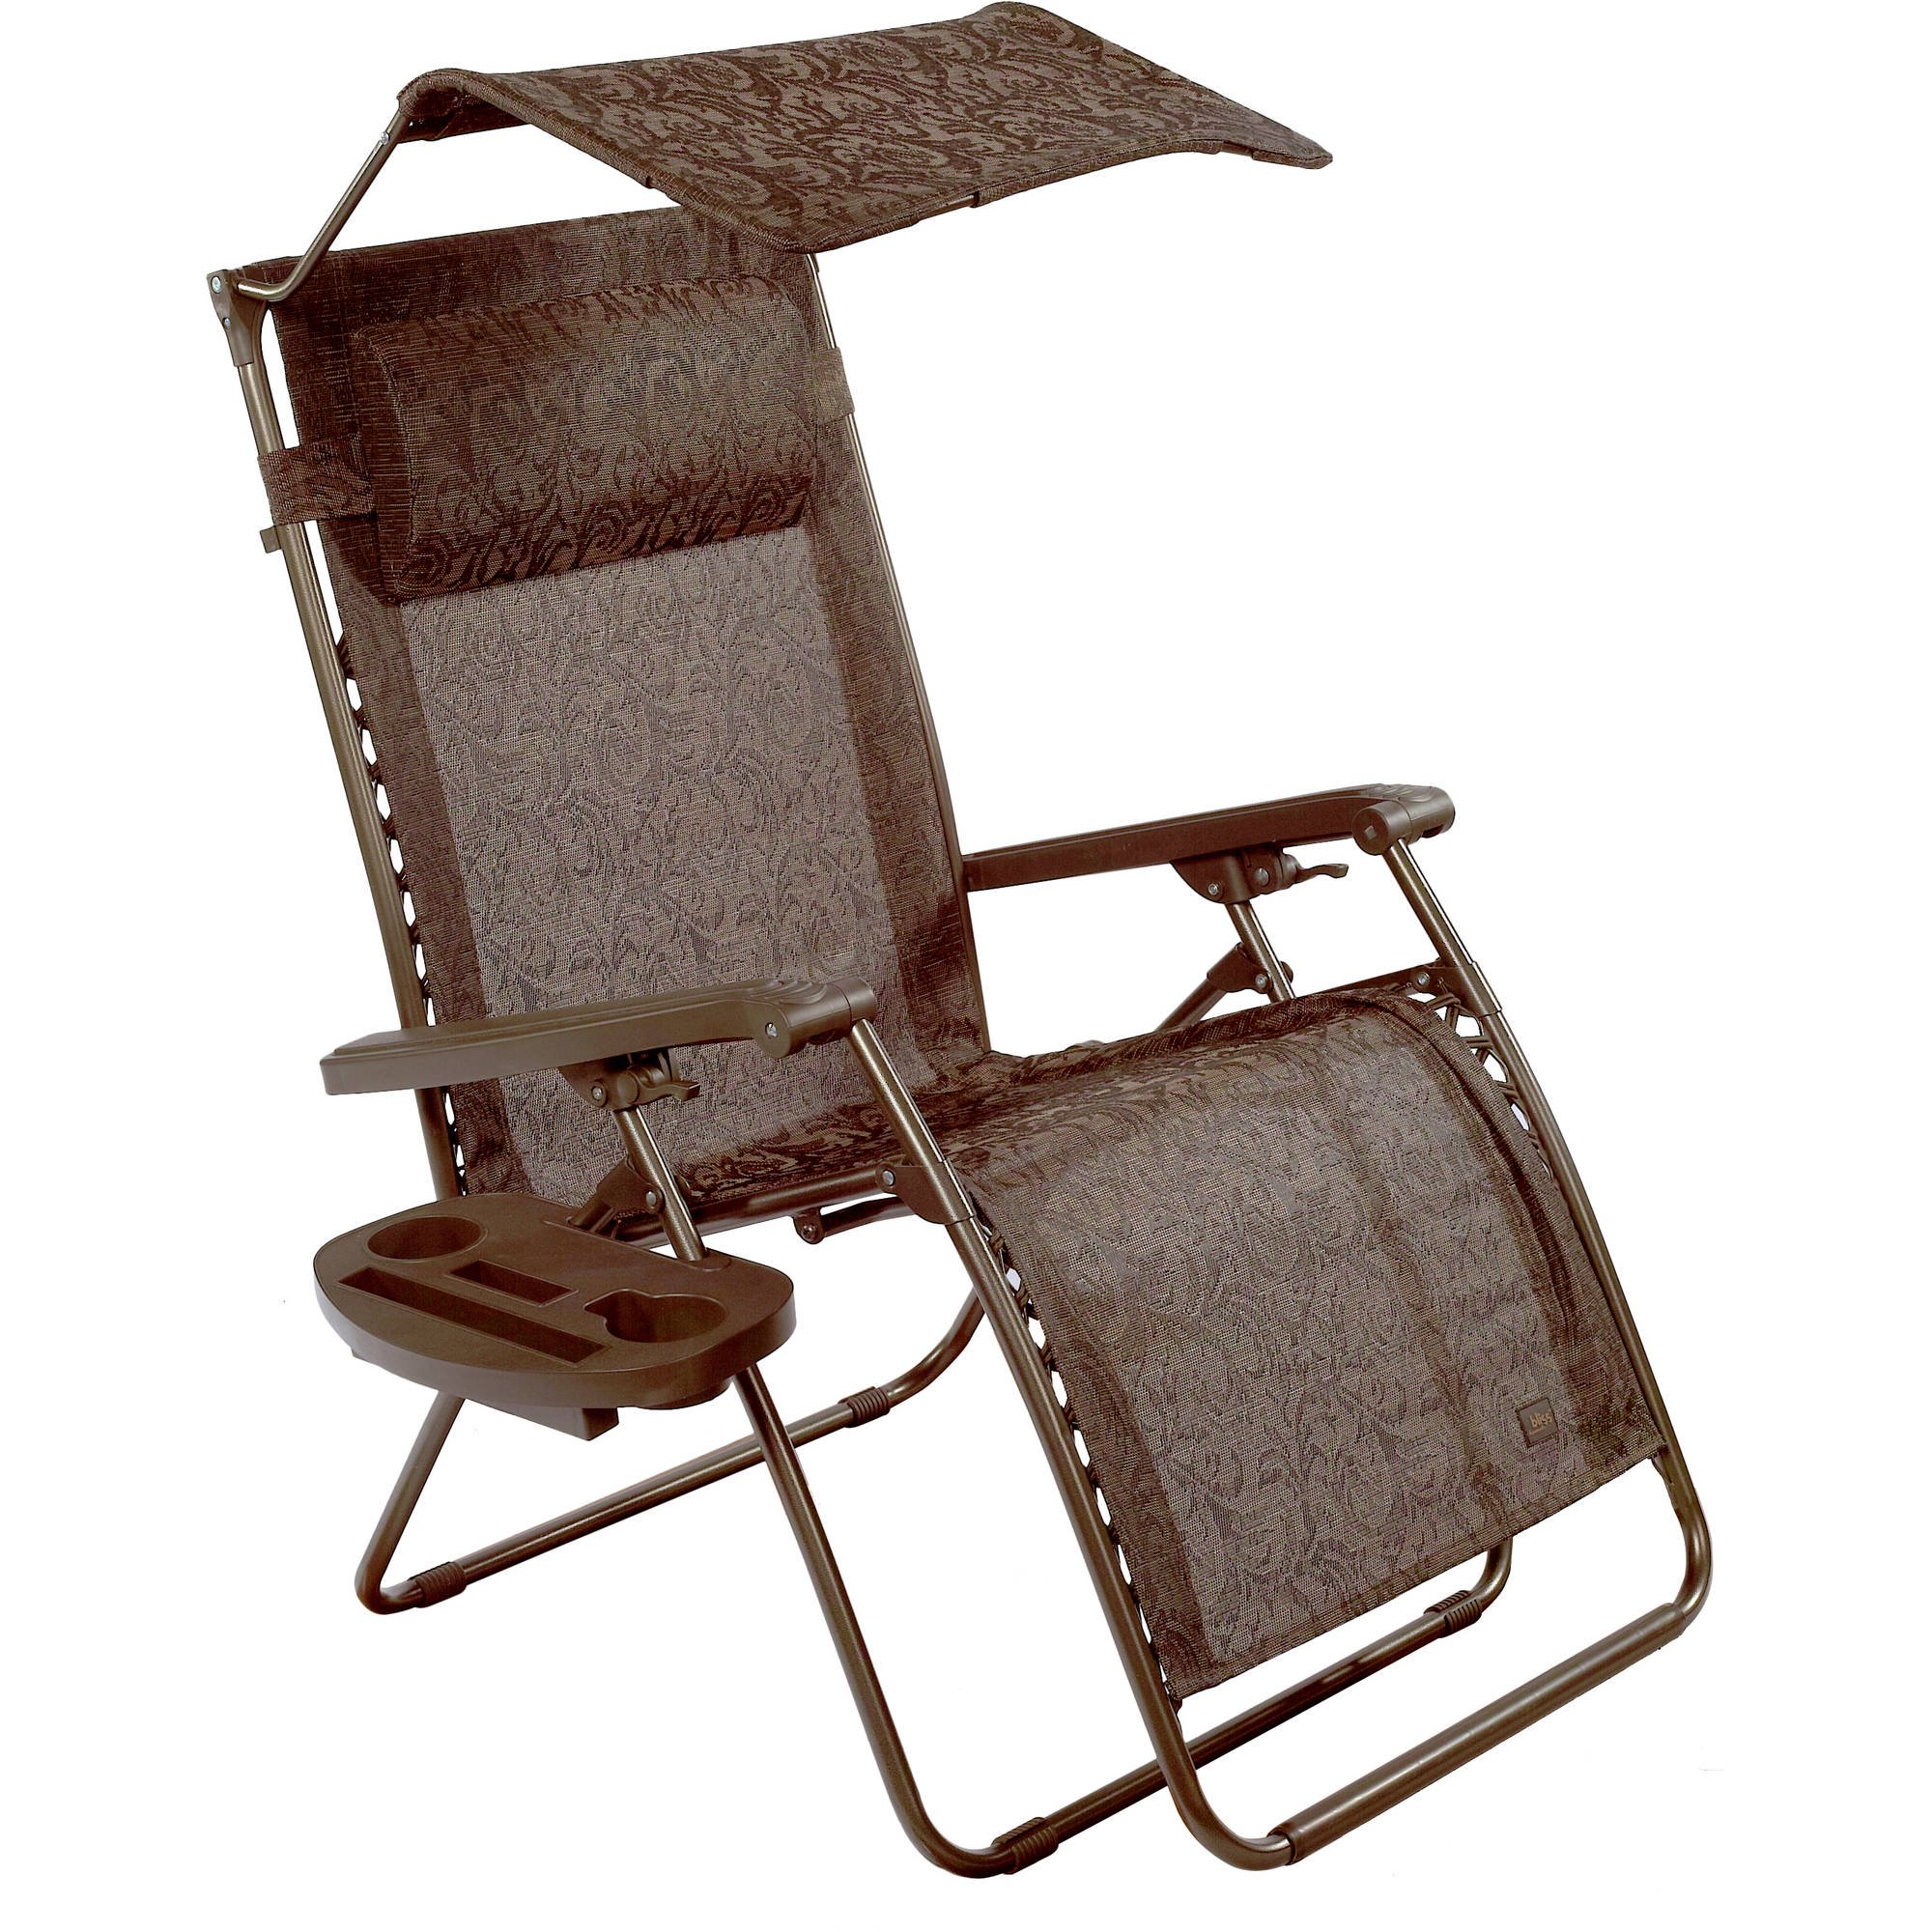 bliss hammocks deluxe xl gravity free recliner bliss hammocks deluxe xl gravity free recliner   walmart    rh   walmart